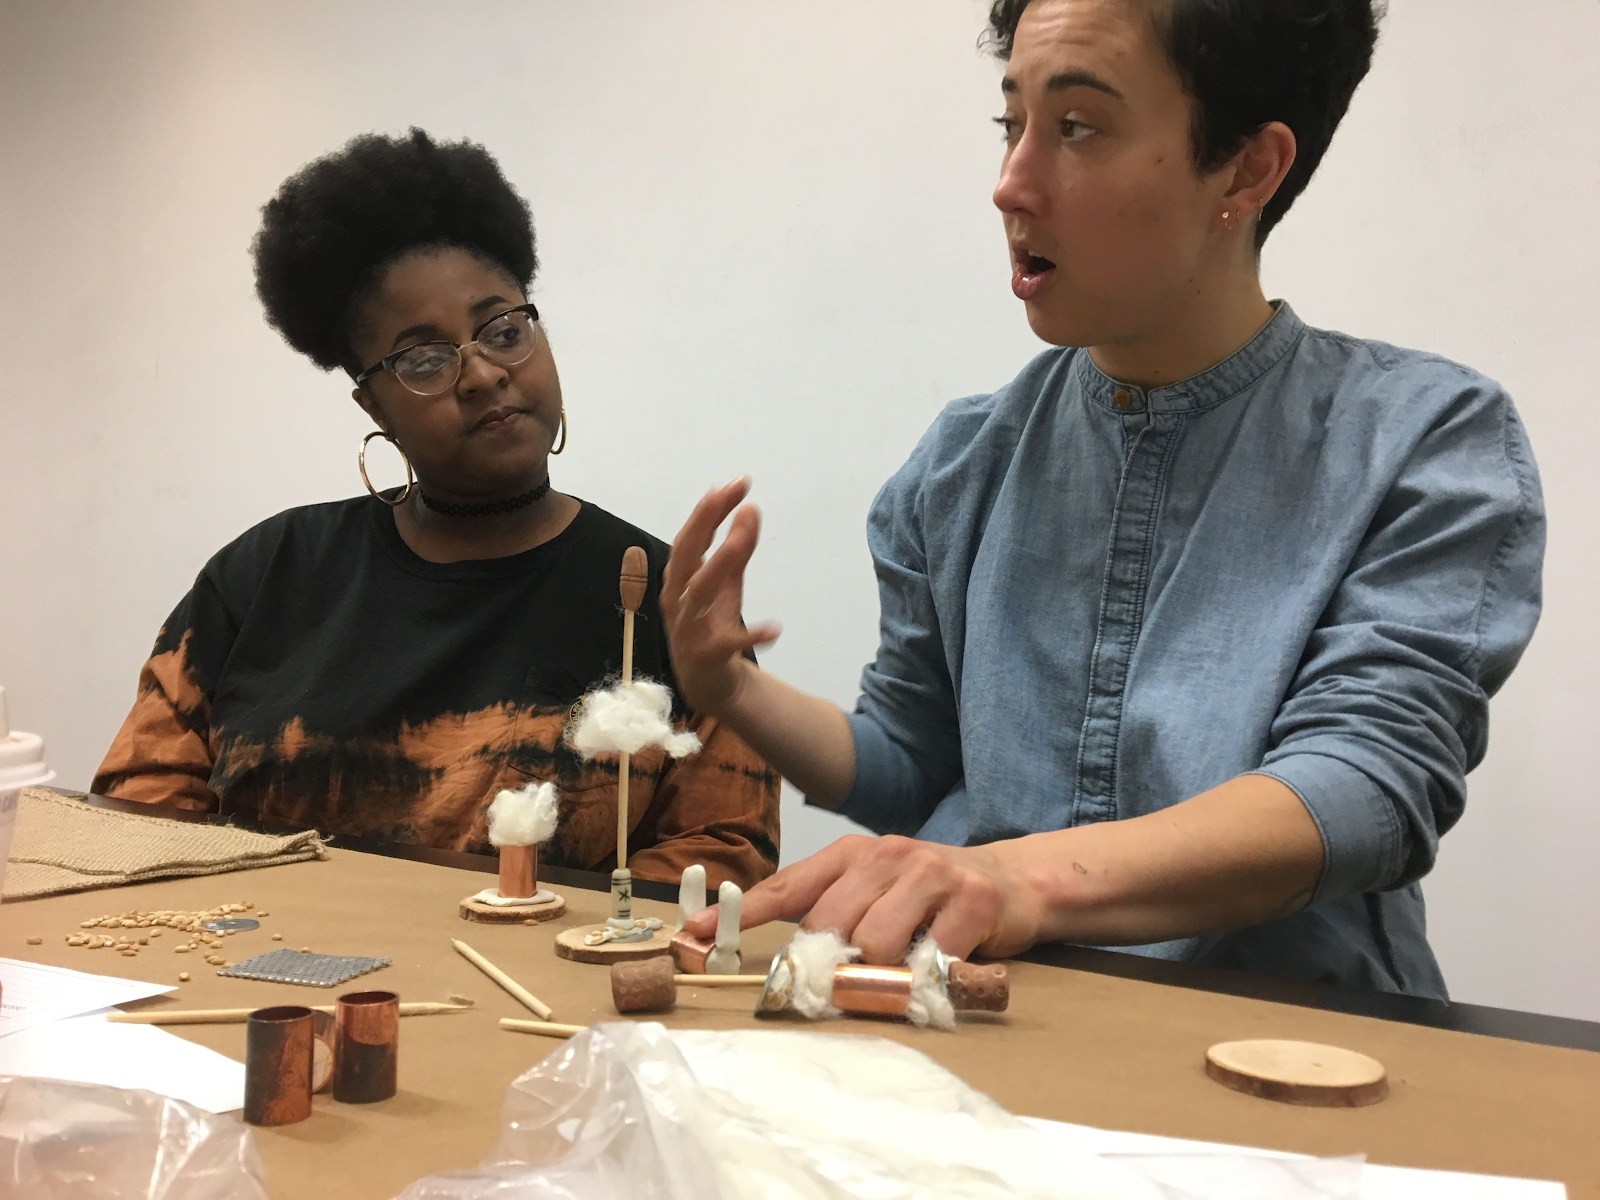 Image from workshop: two students at a table presentng crafts from a future world.